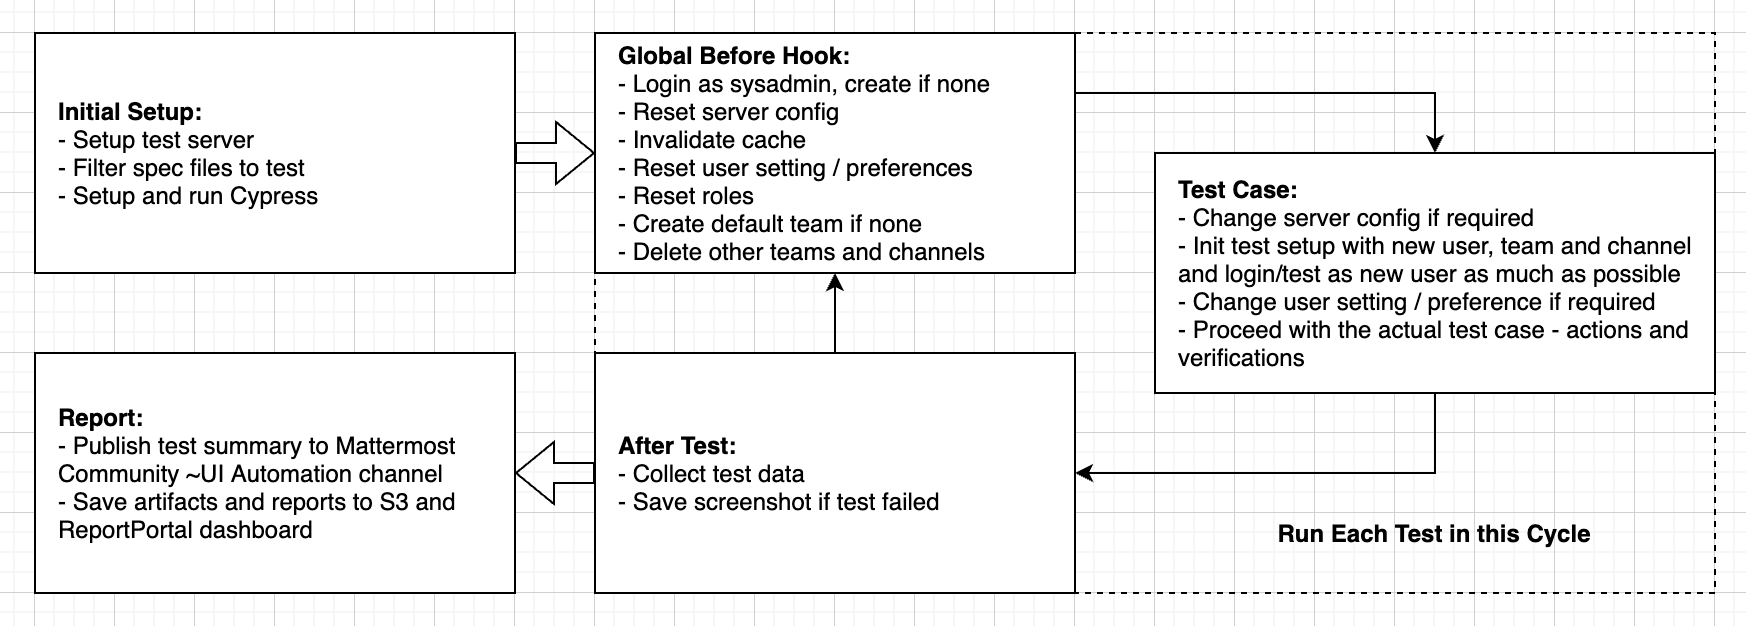 test execution life cycle image